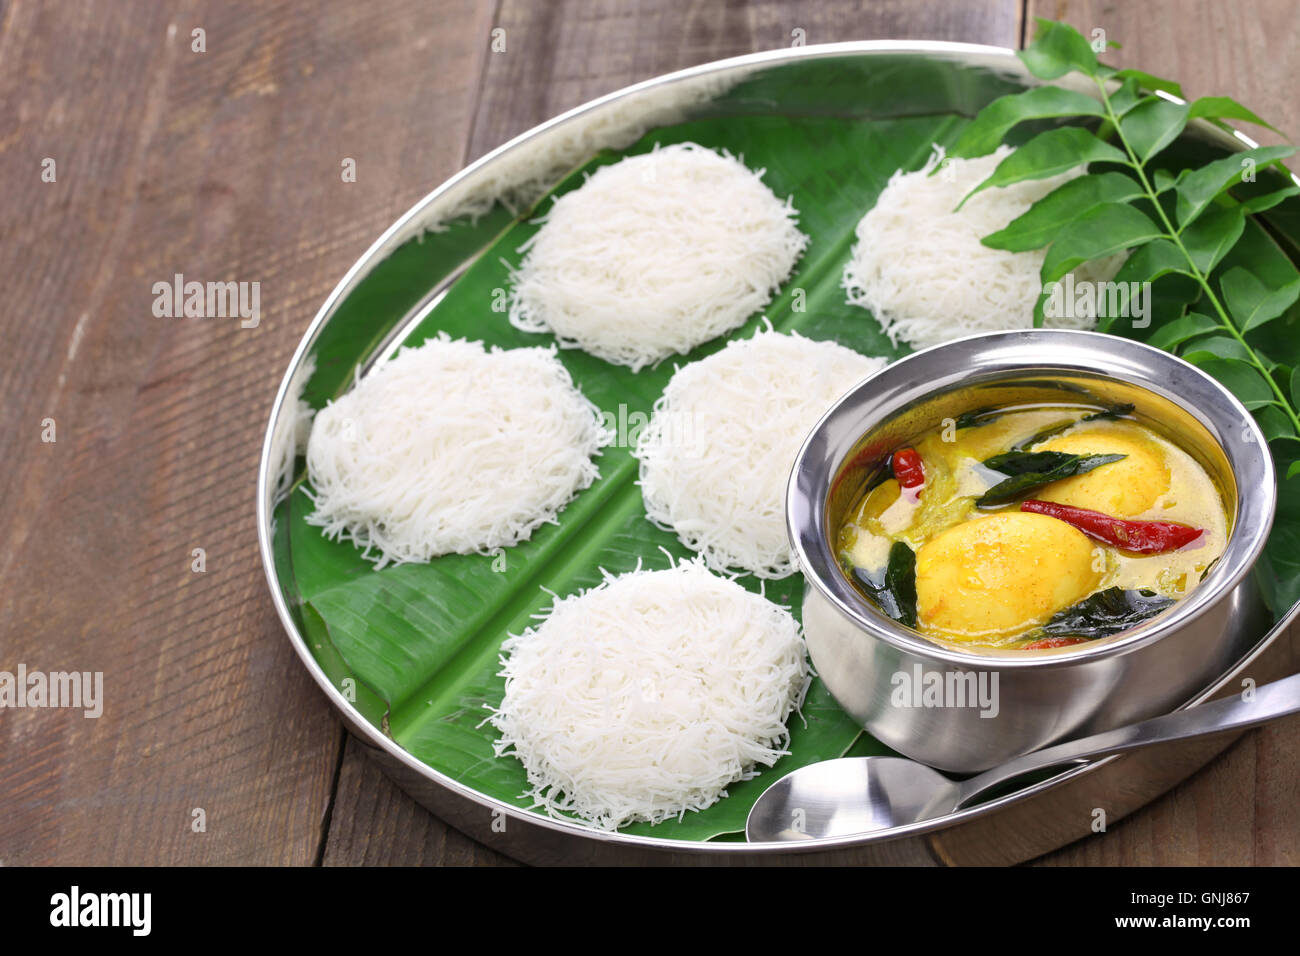 idiyappam (string hoppers)  with egg curry, south indian and sri lankan cuisine - Stock Image